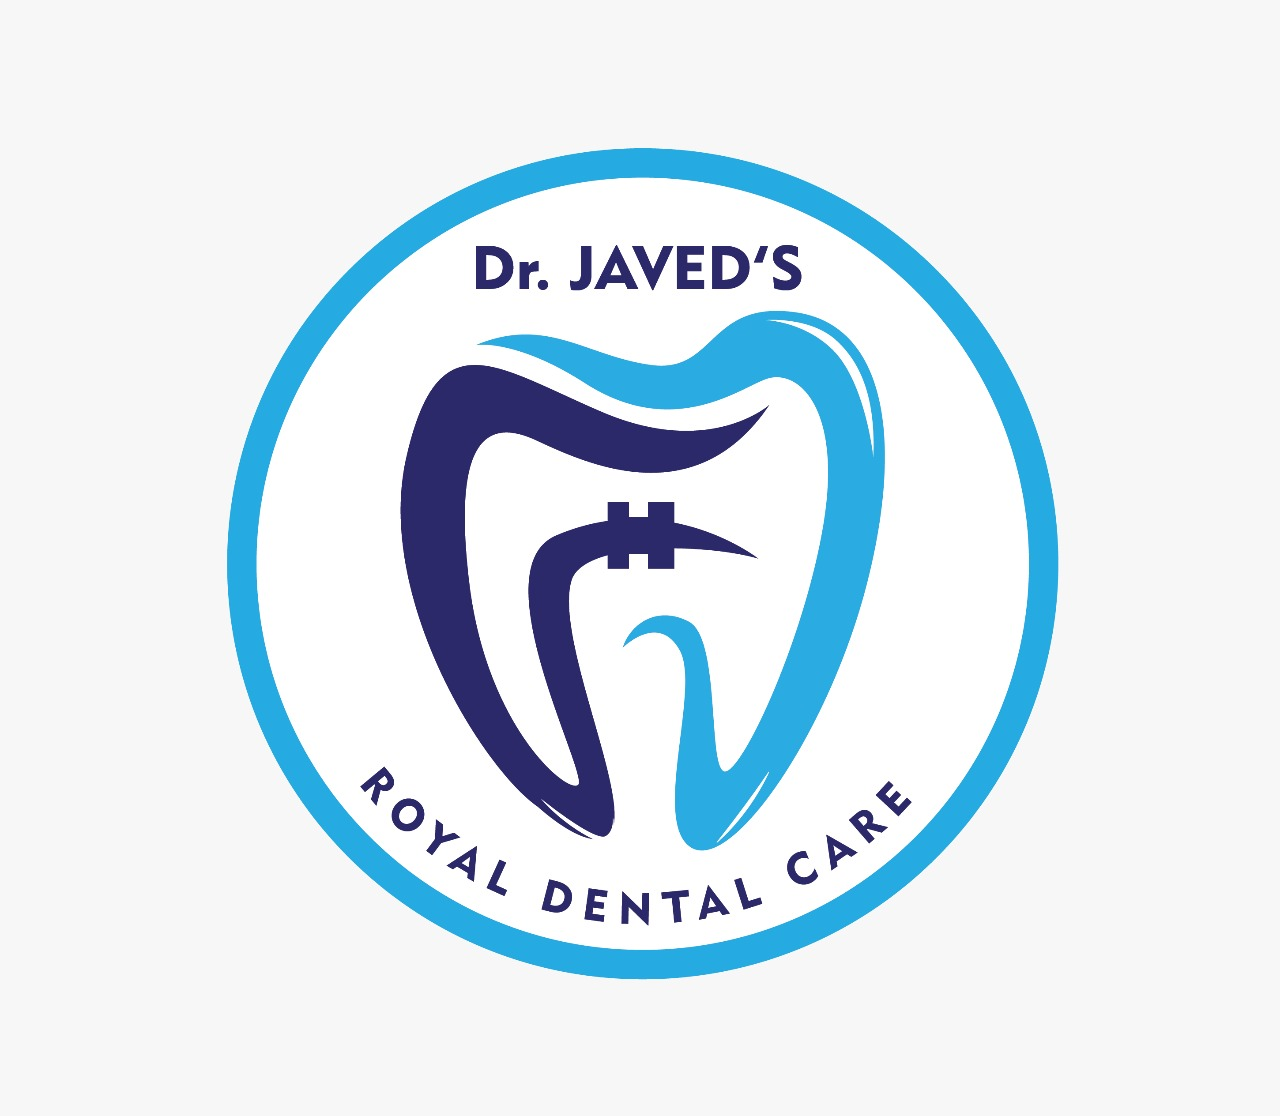 Royal Dental Care and Advance Orthodontic and Implant Centre